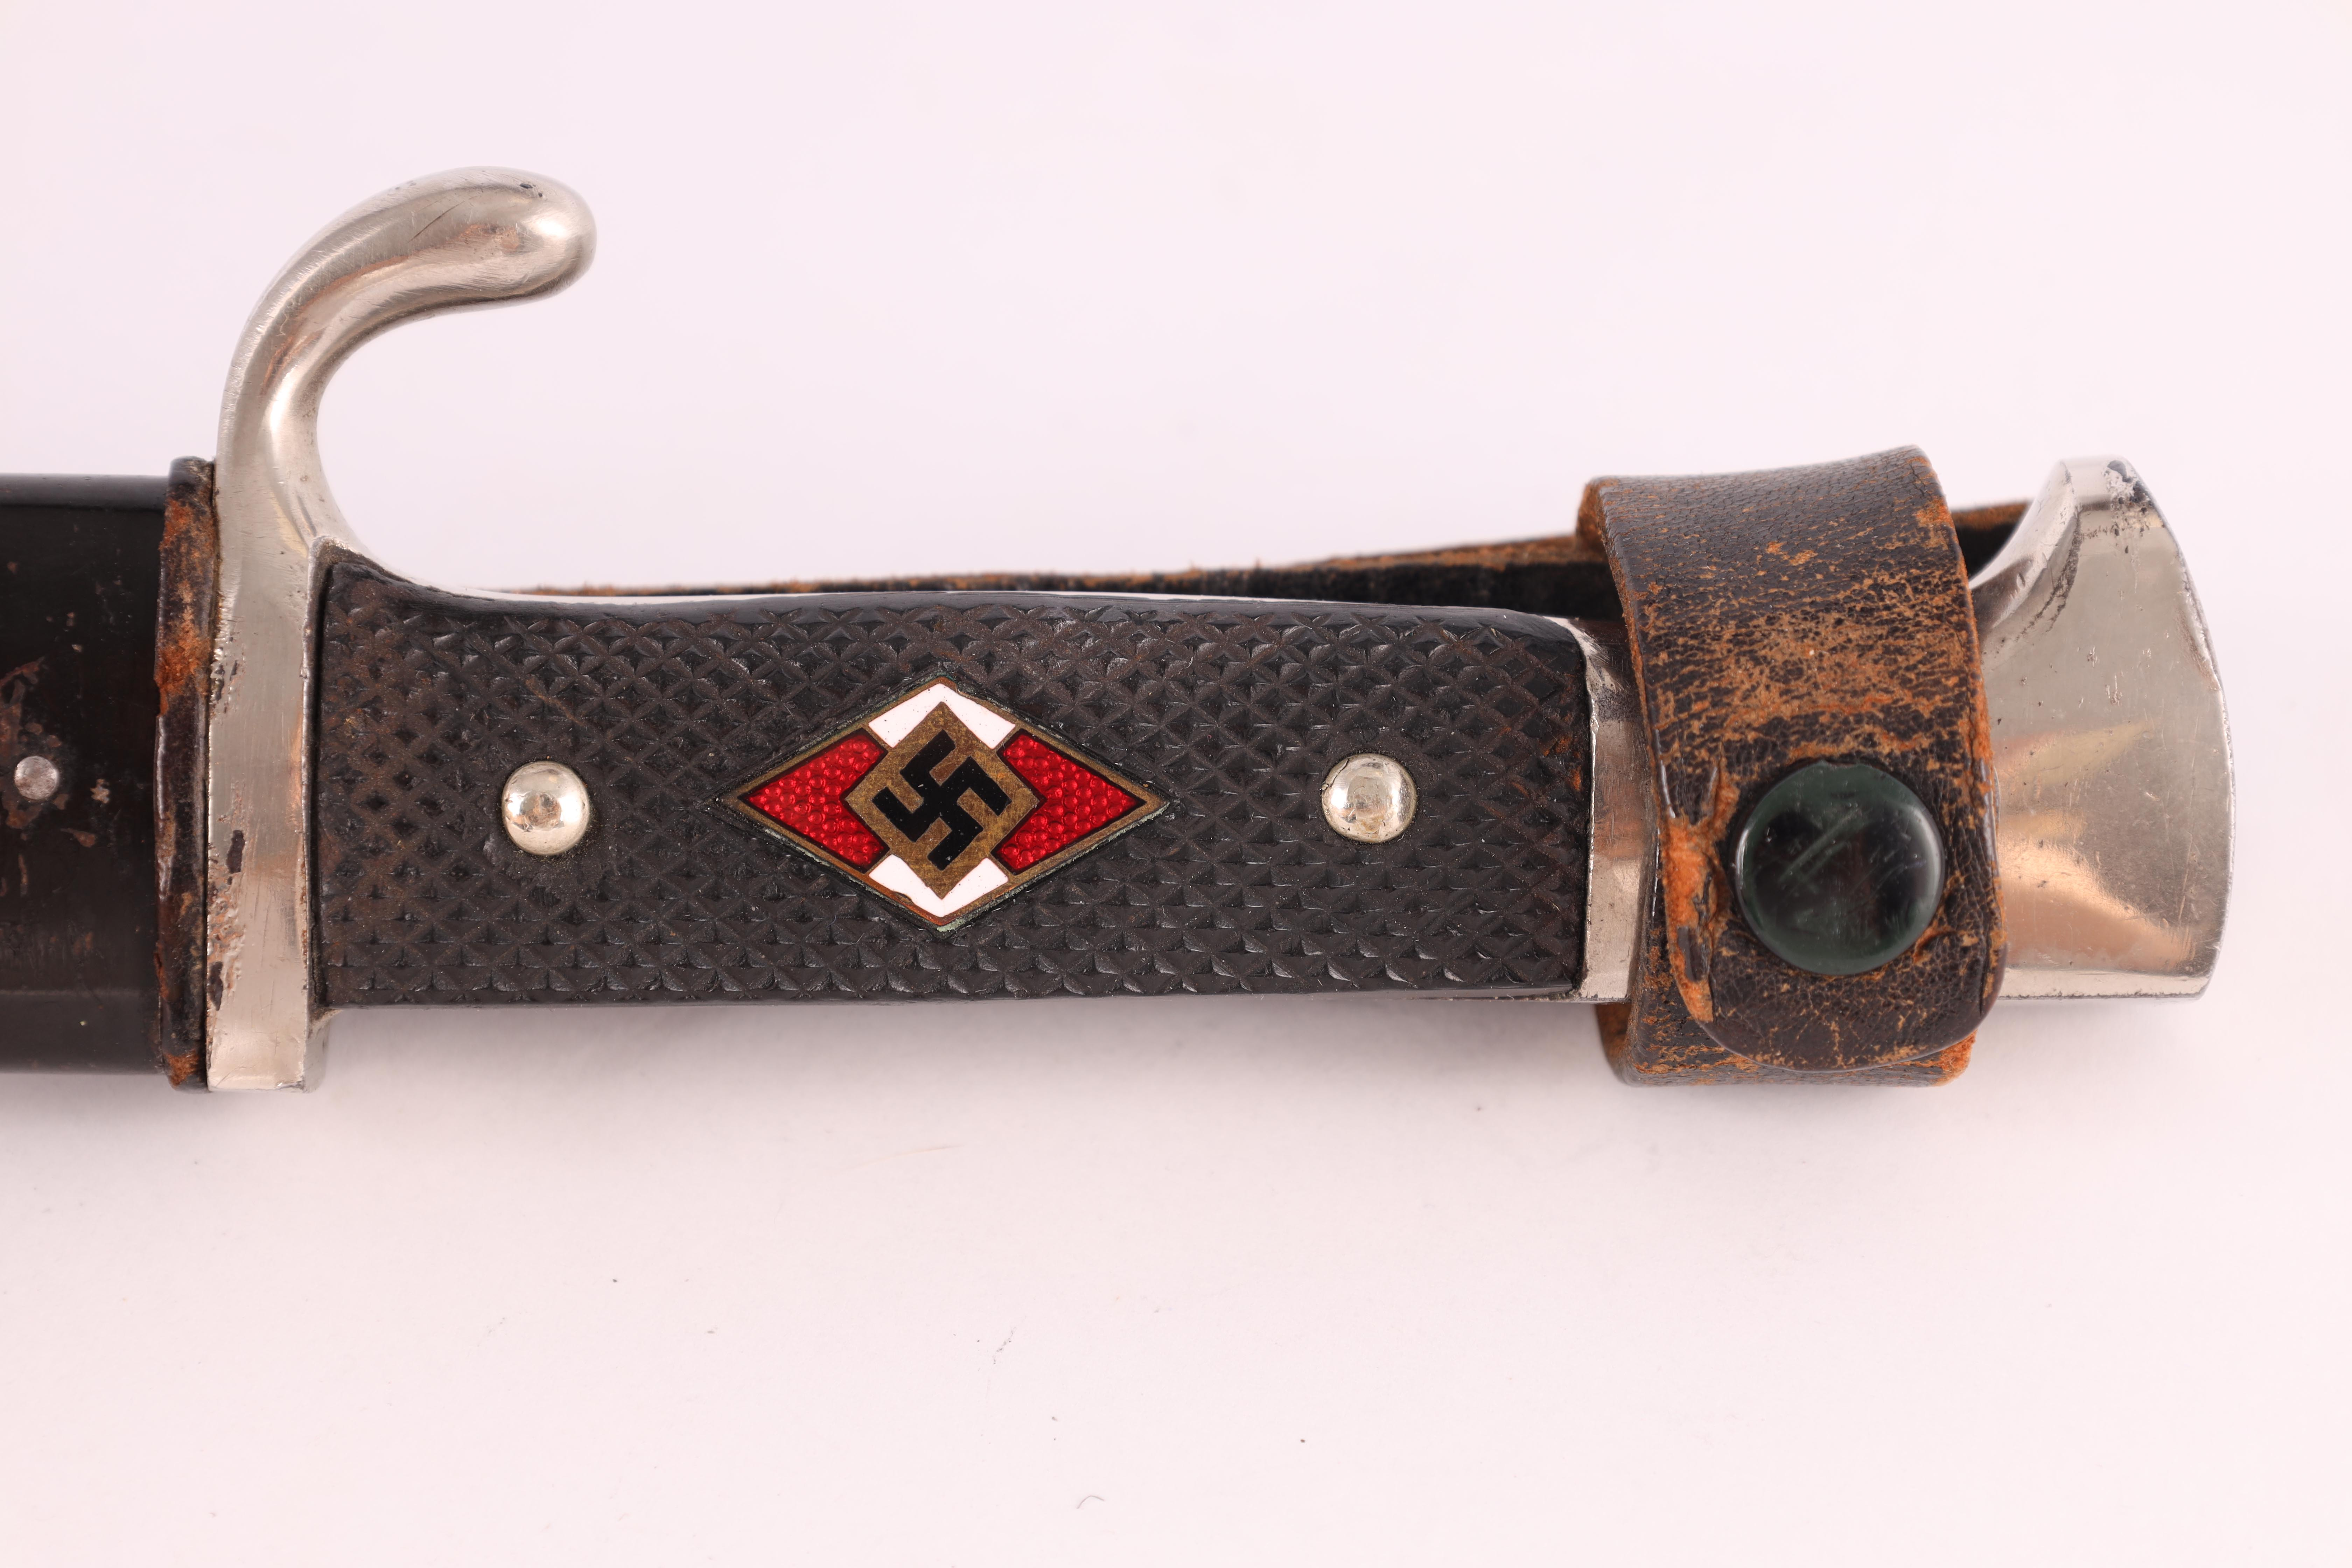 A WORLD WAR II GERMAN NAZI HITLER YOUTH DAGGER with checkered grip set with an enamel swastika badge - Image 3 of 9